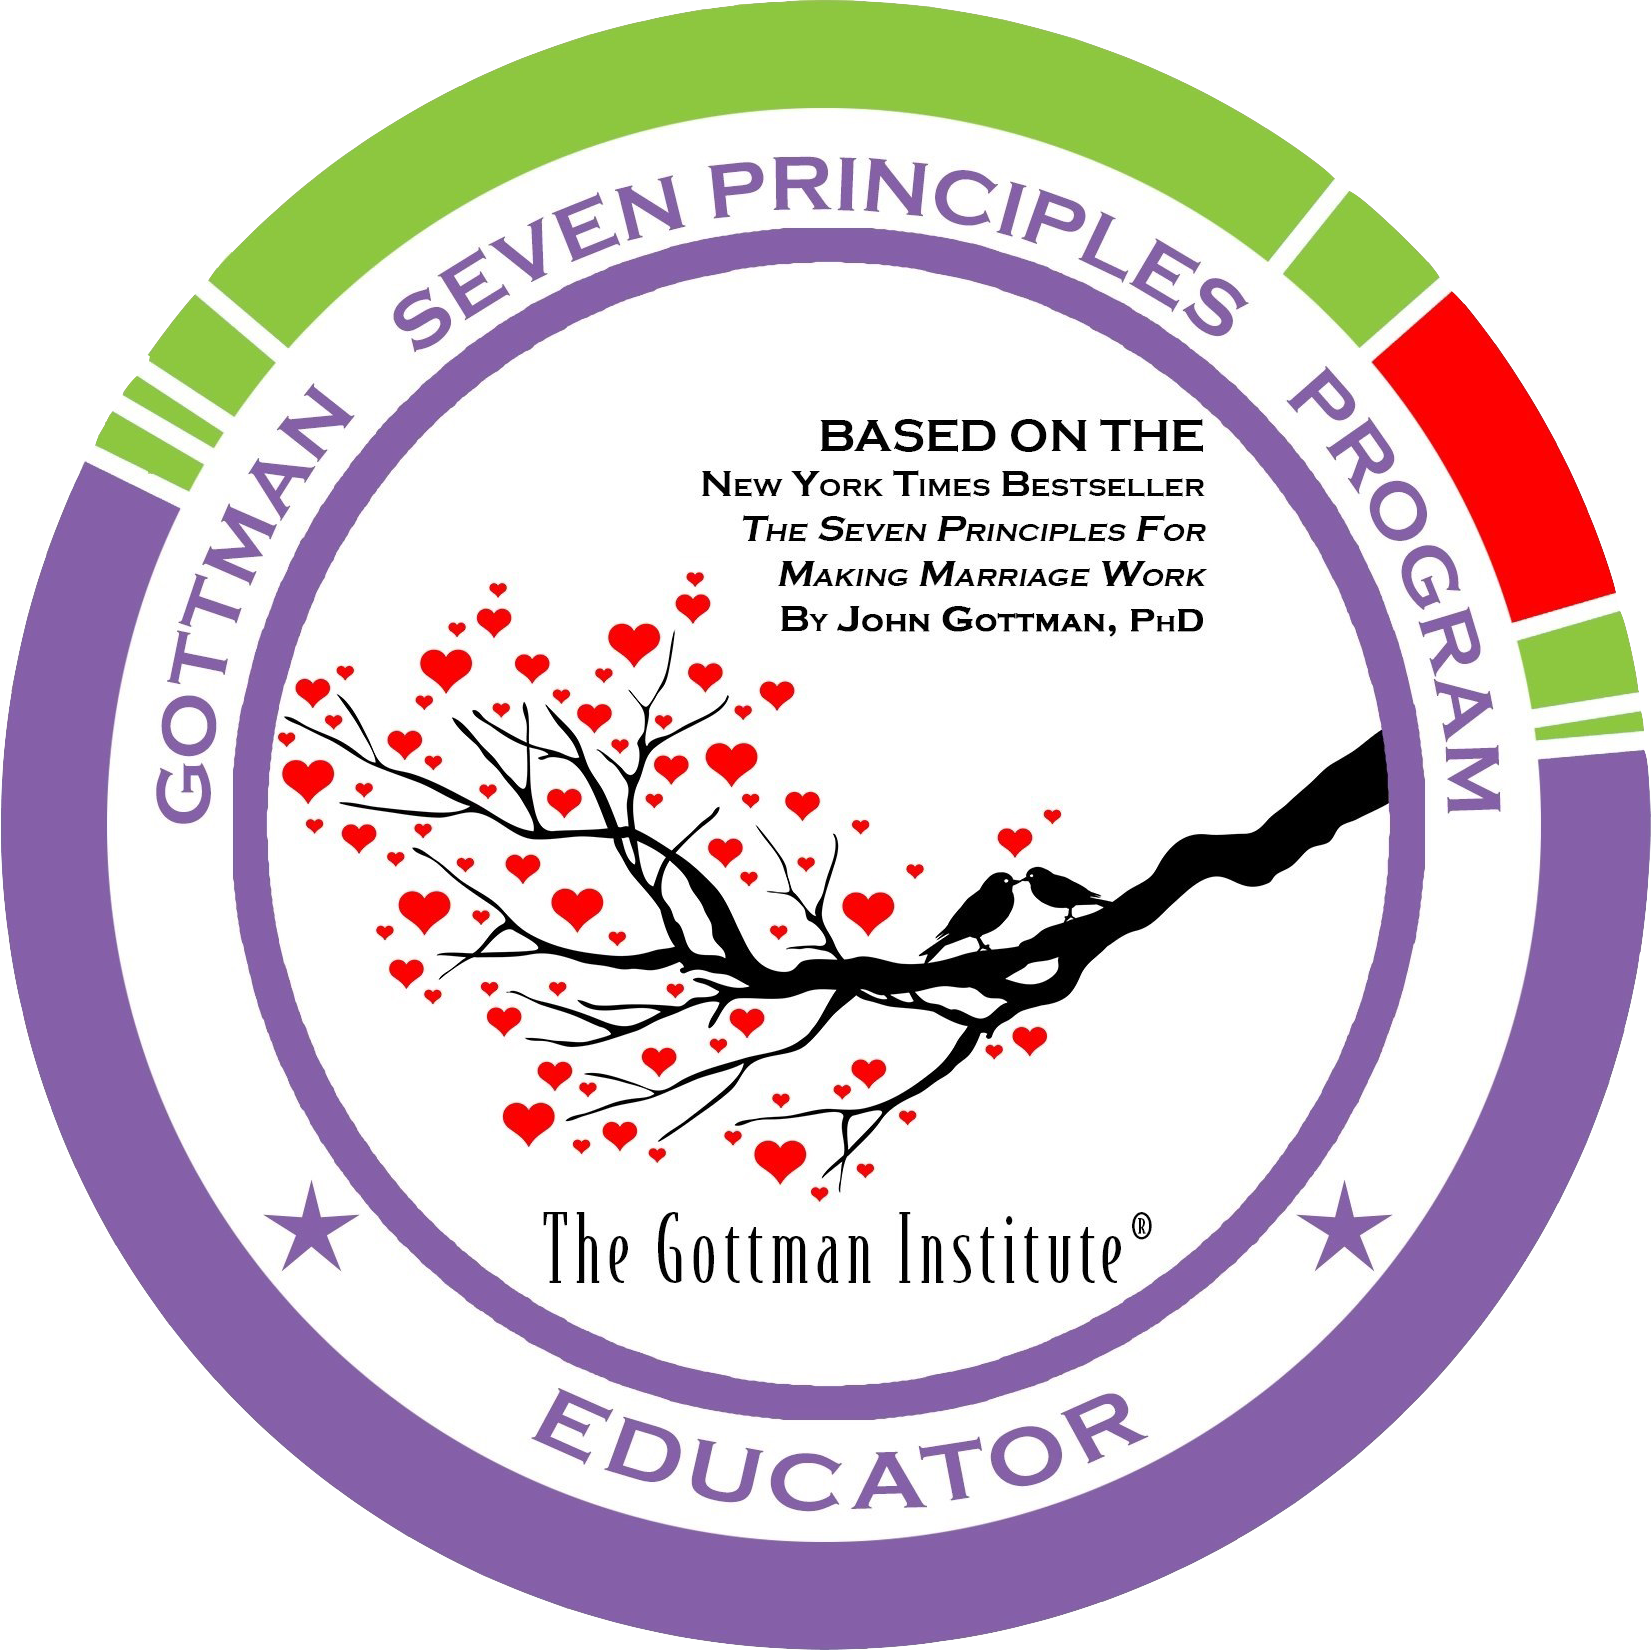 Gottman Educator